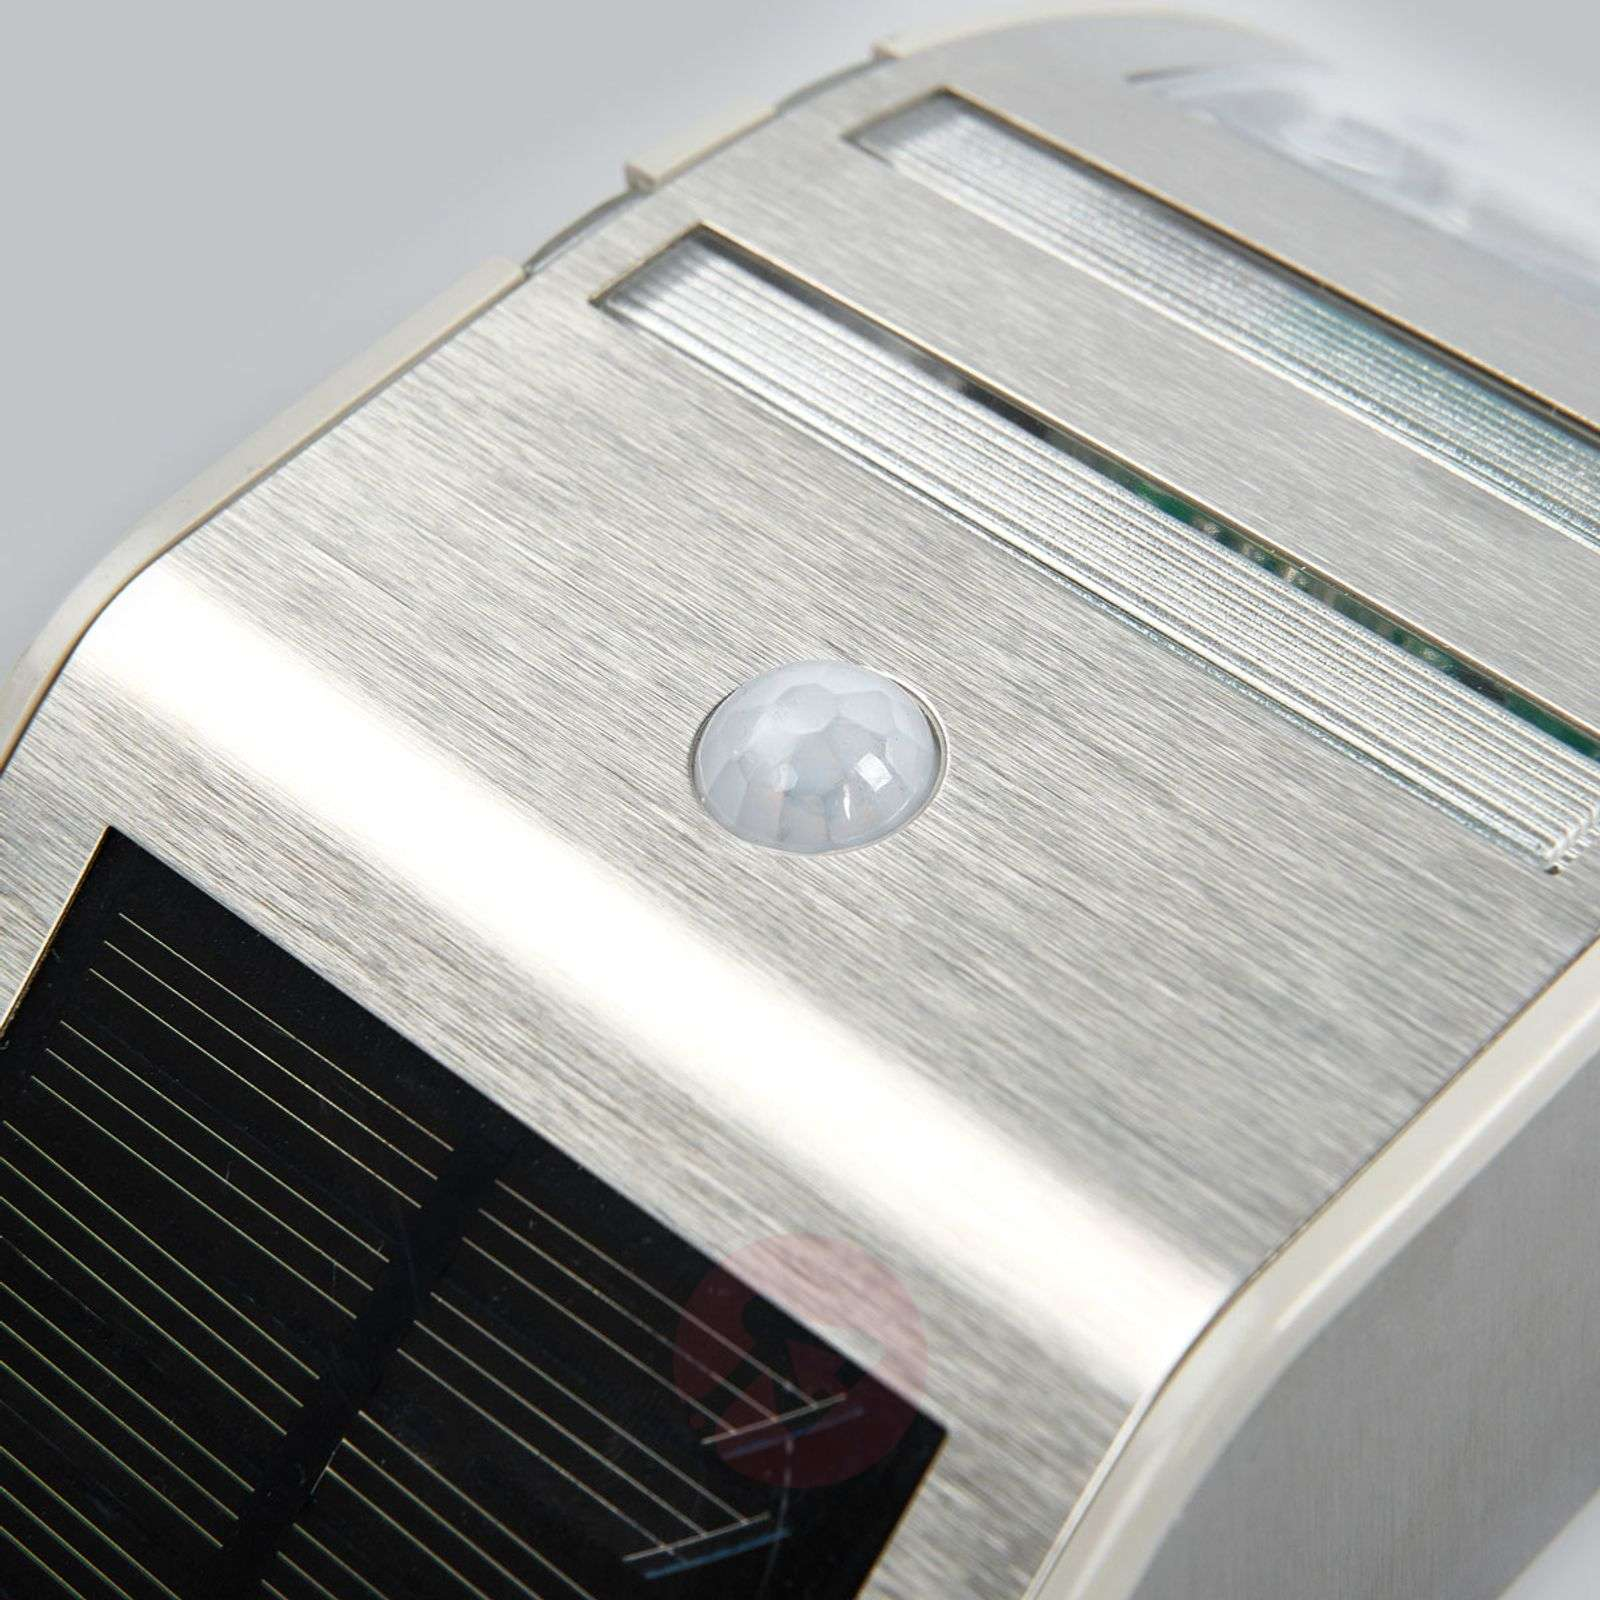 Sol WL-2007 LED solar wall light with MD-1540155-01